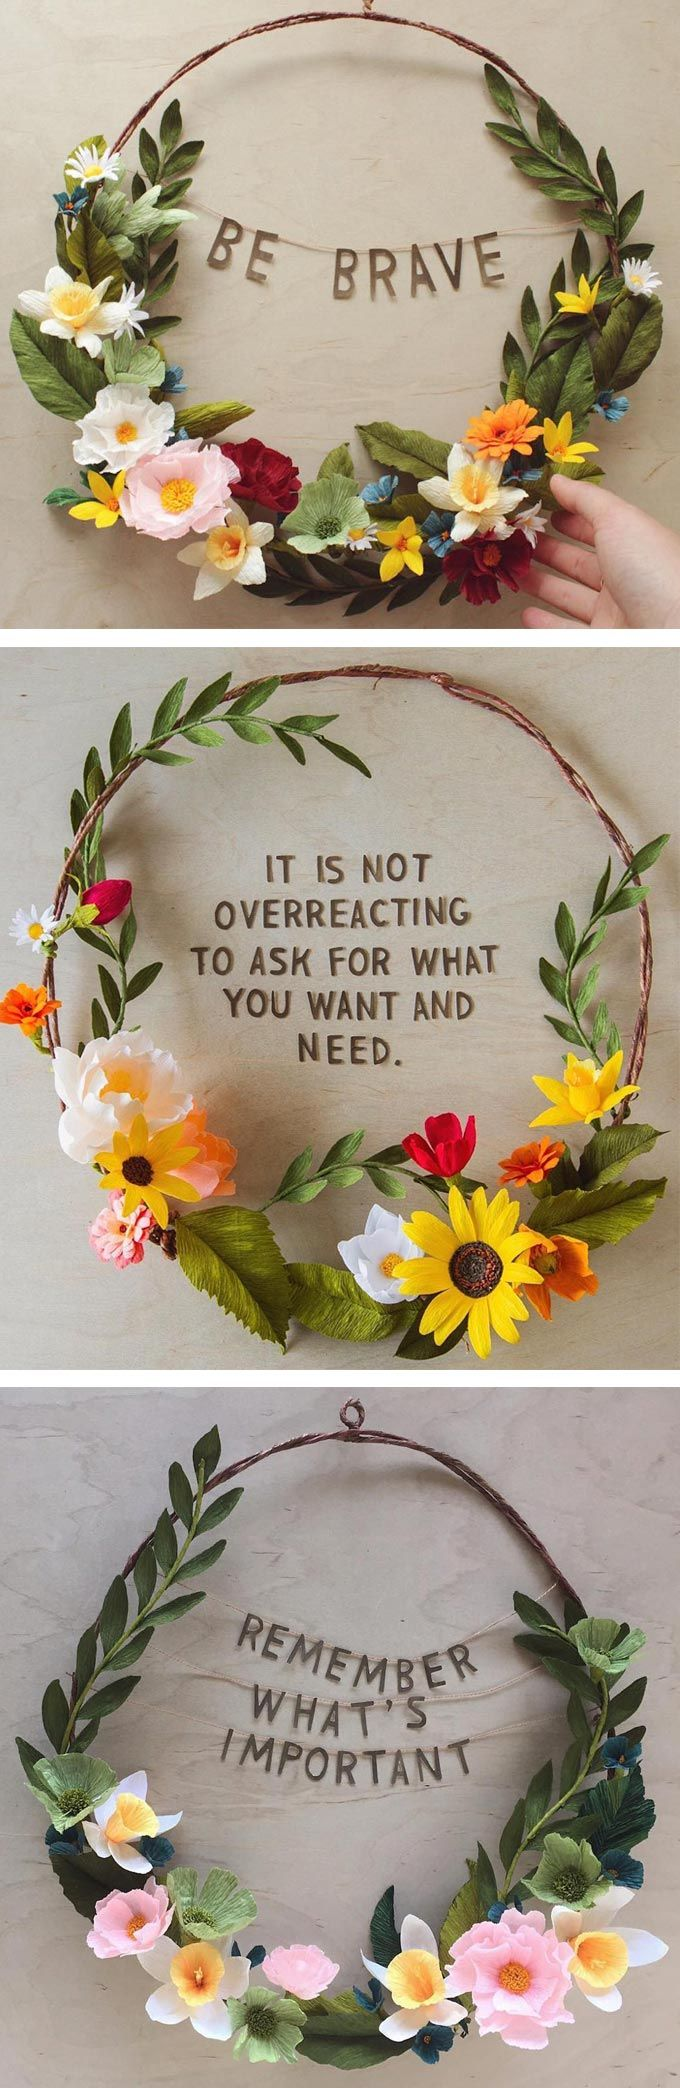 Grace D. Chin empowering floral wreaths